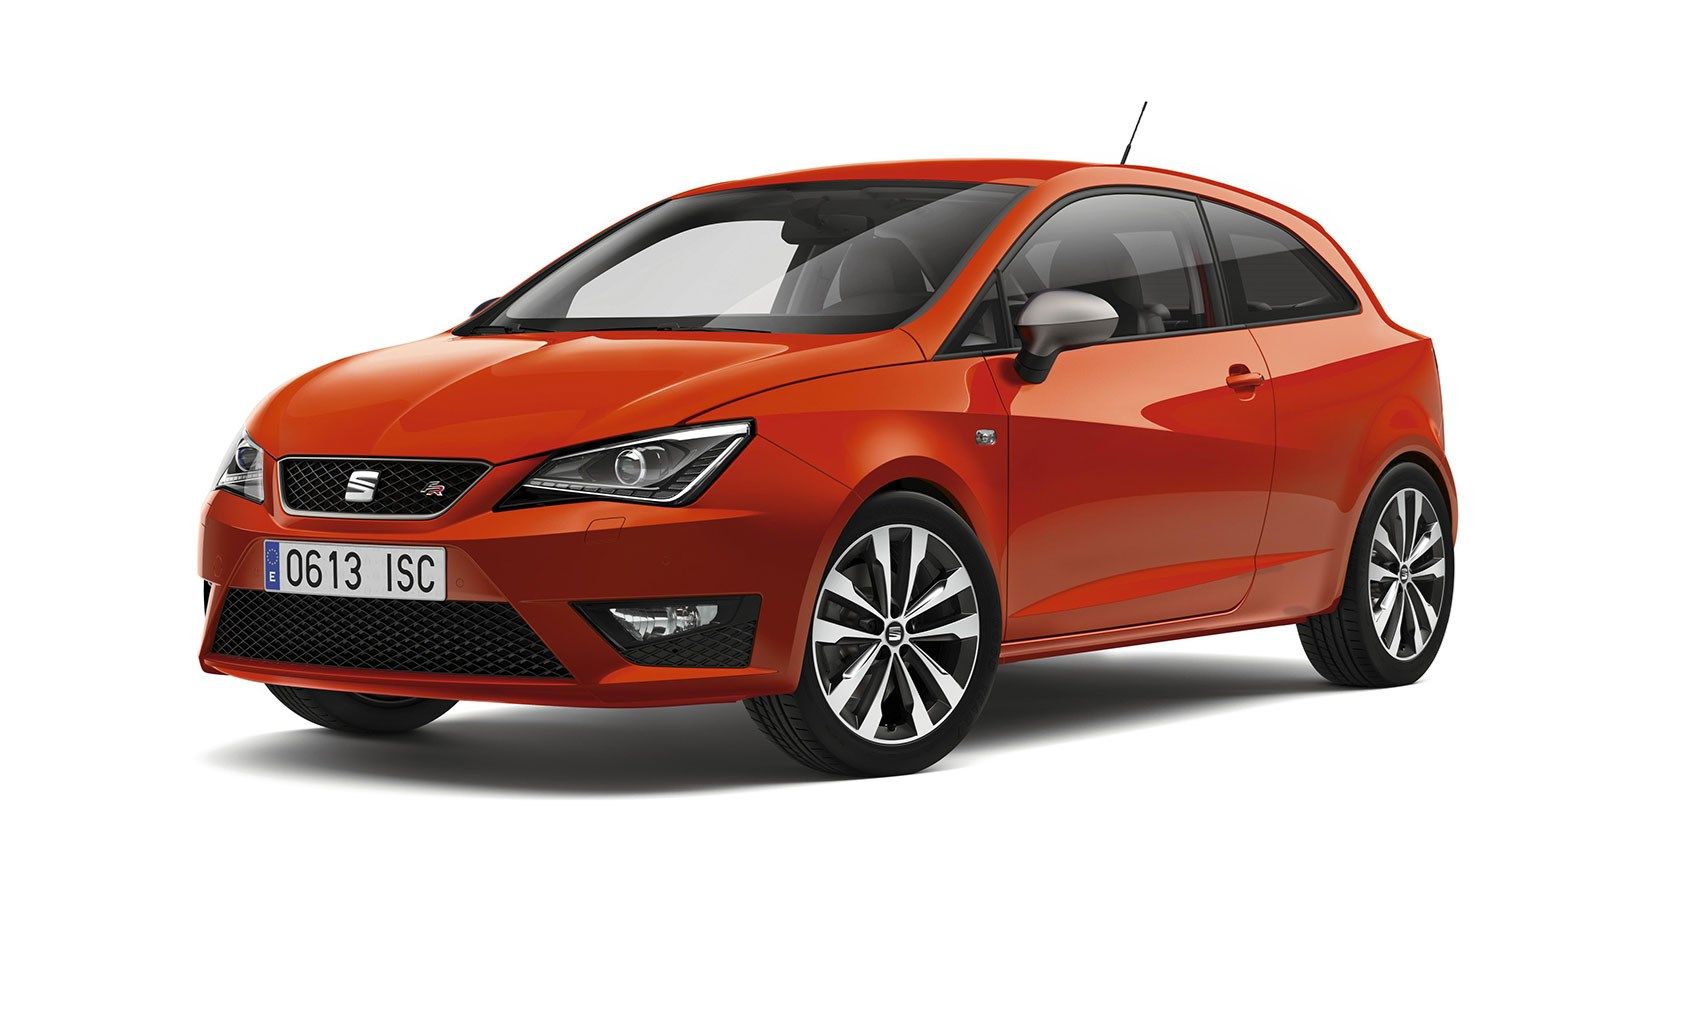 seat ibiza facelift 2015 the supermini beat goes on. Black Bedroom Furniture Sets. Home Design Ideas